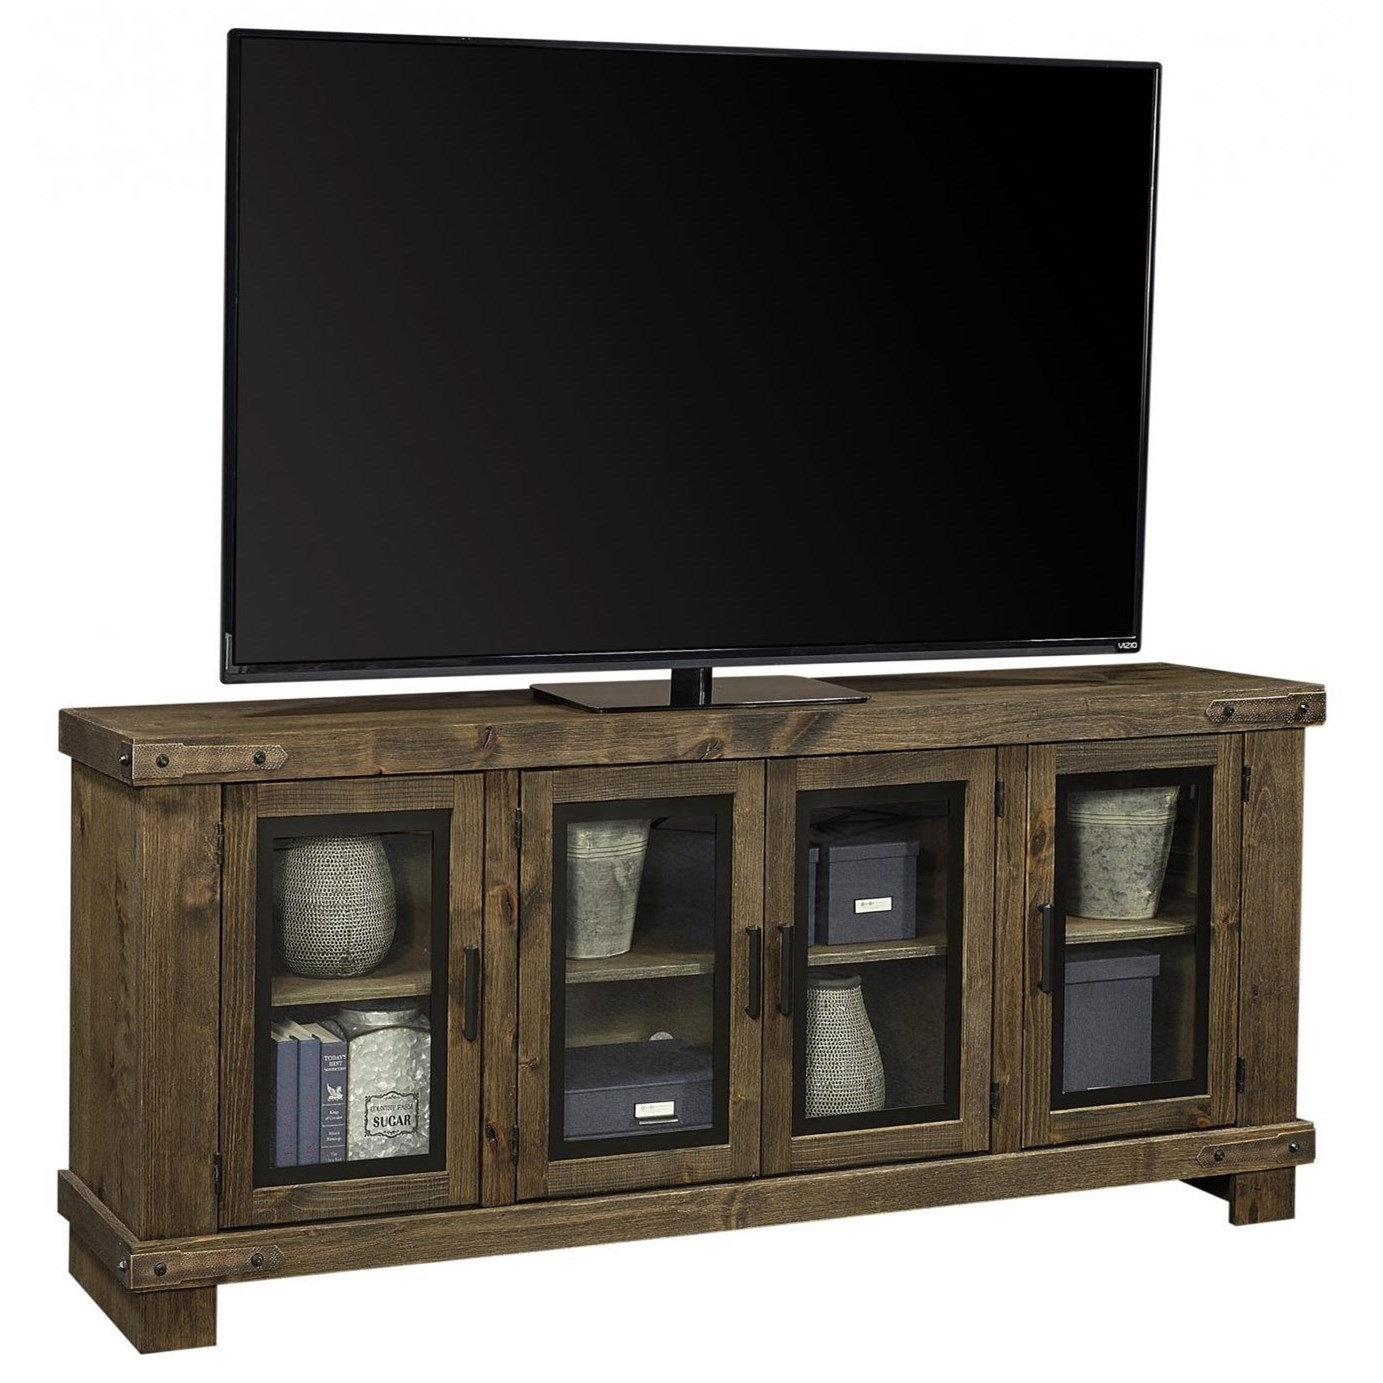 "Sawyer 78"" Console by Aspenhome at Walker's Furniture"